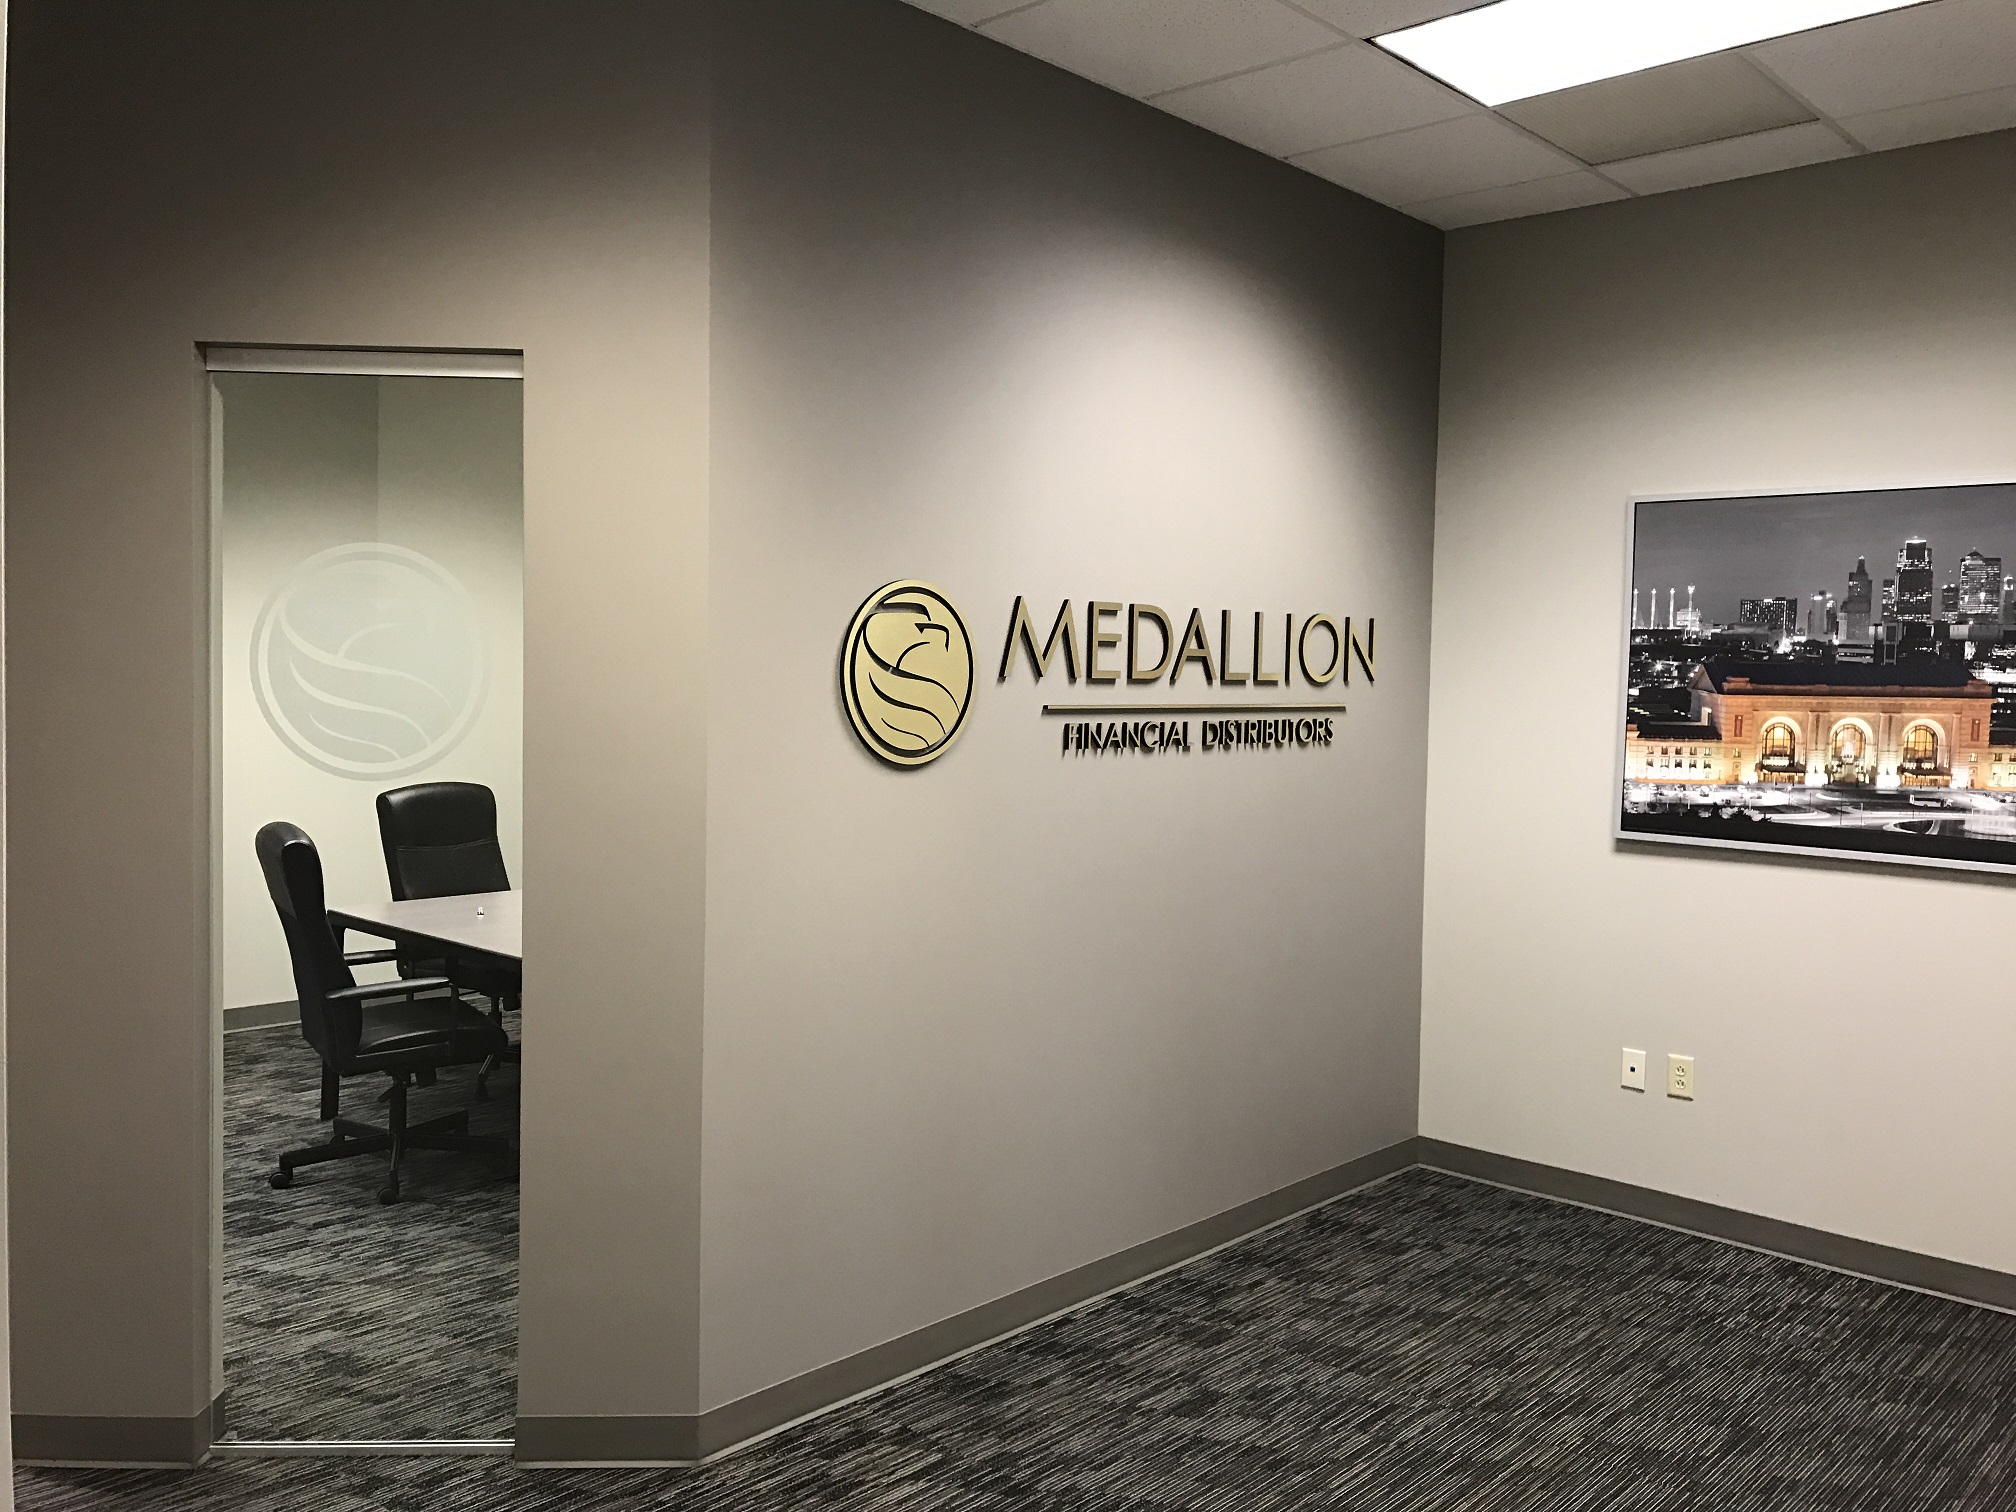 Medallion Financial Distributor Lobby Sign And Window